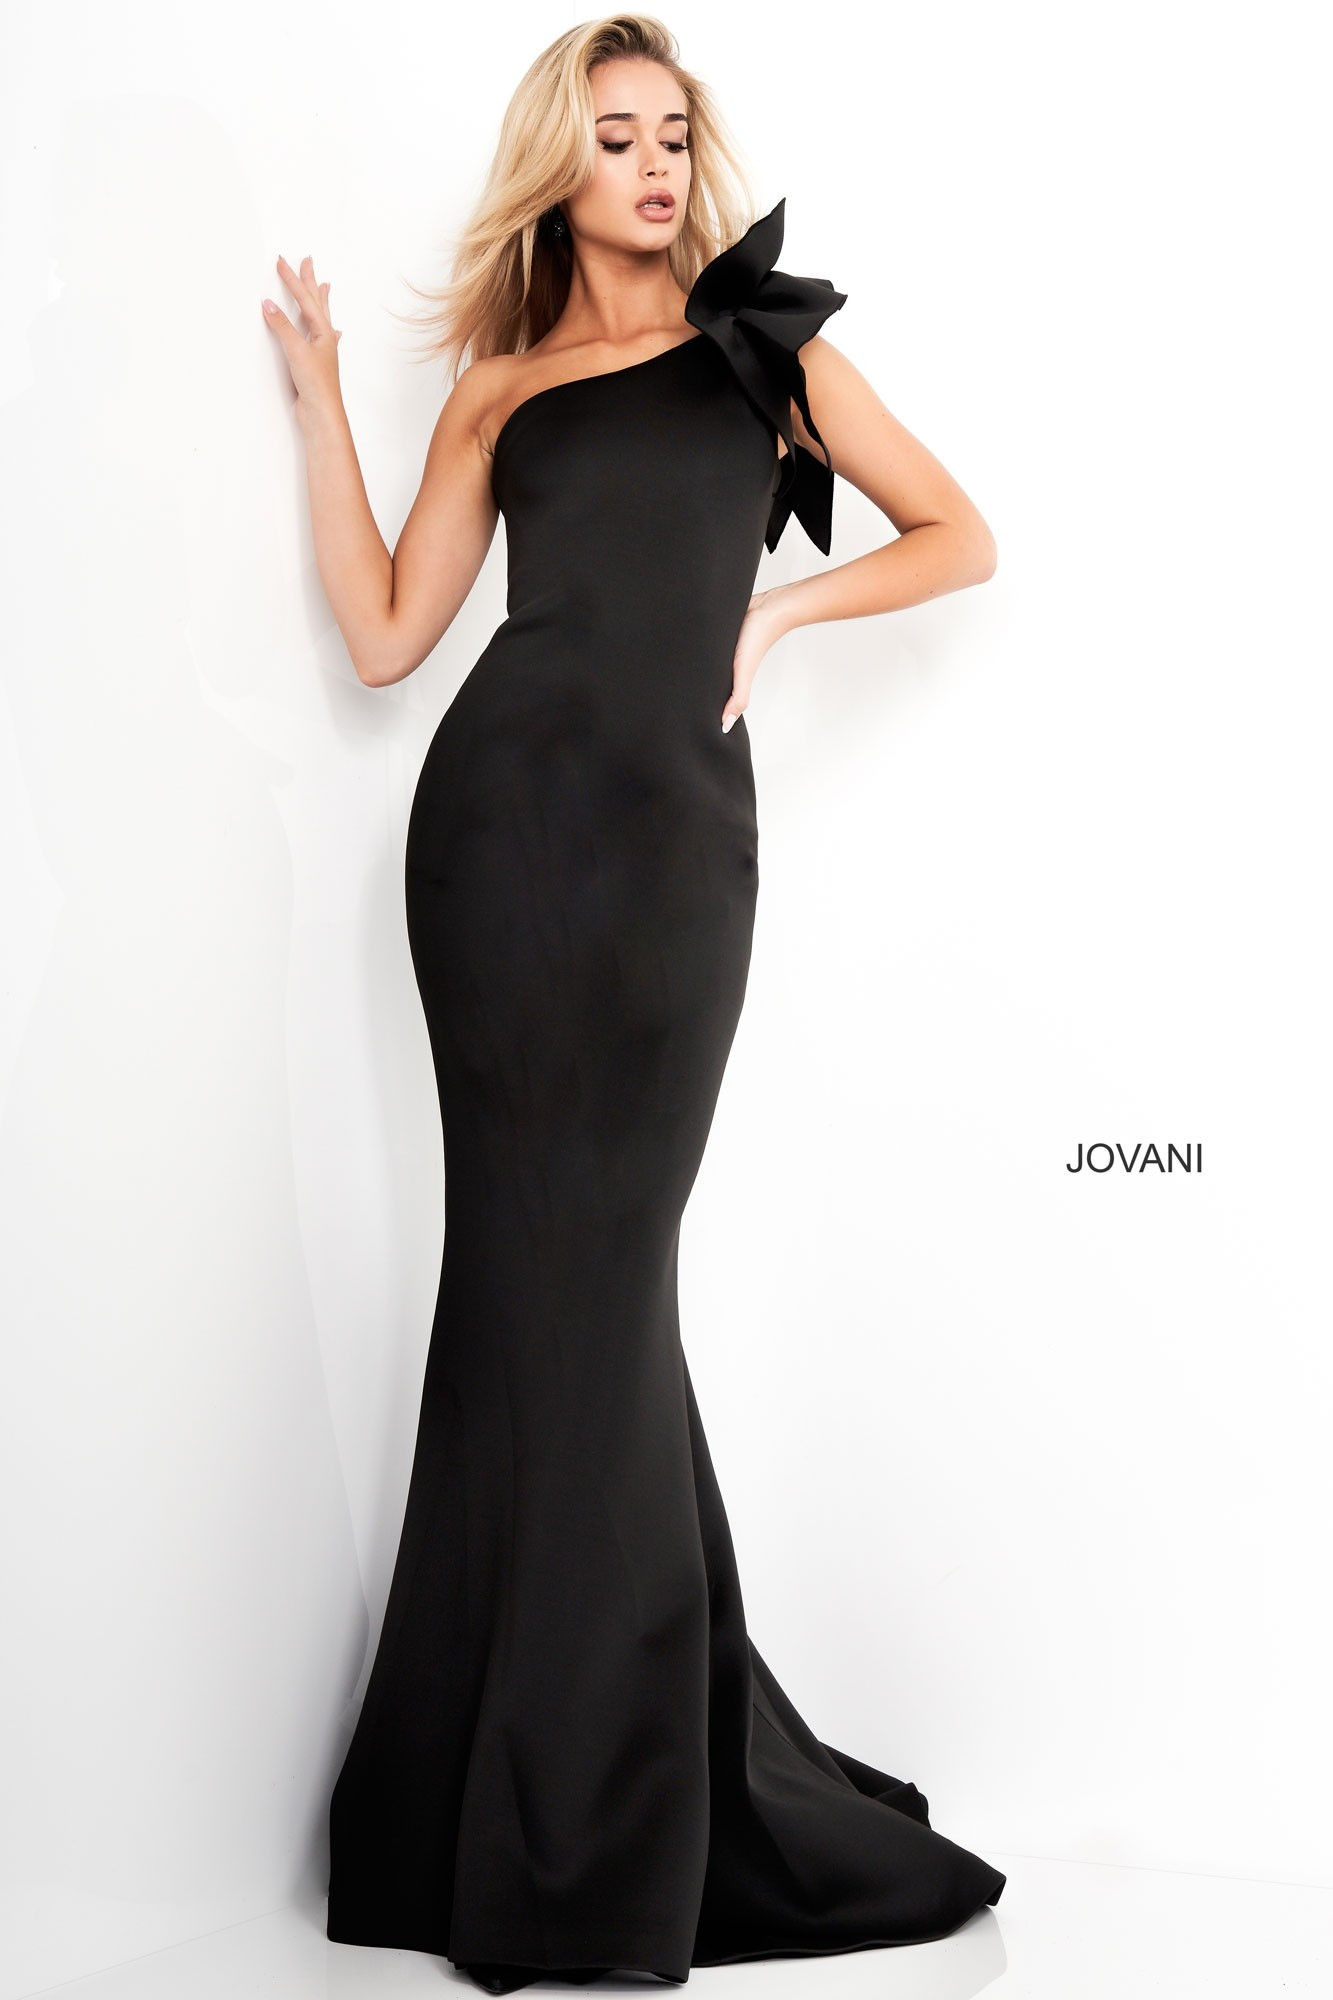 Jovani 32602 One-Shoulder Ruffle Fitted Gown